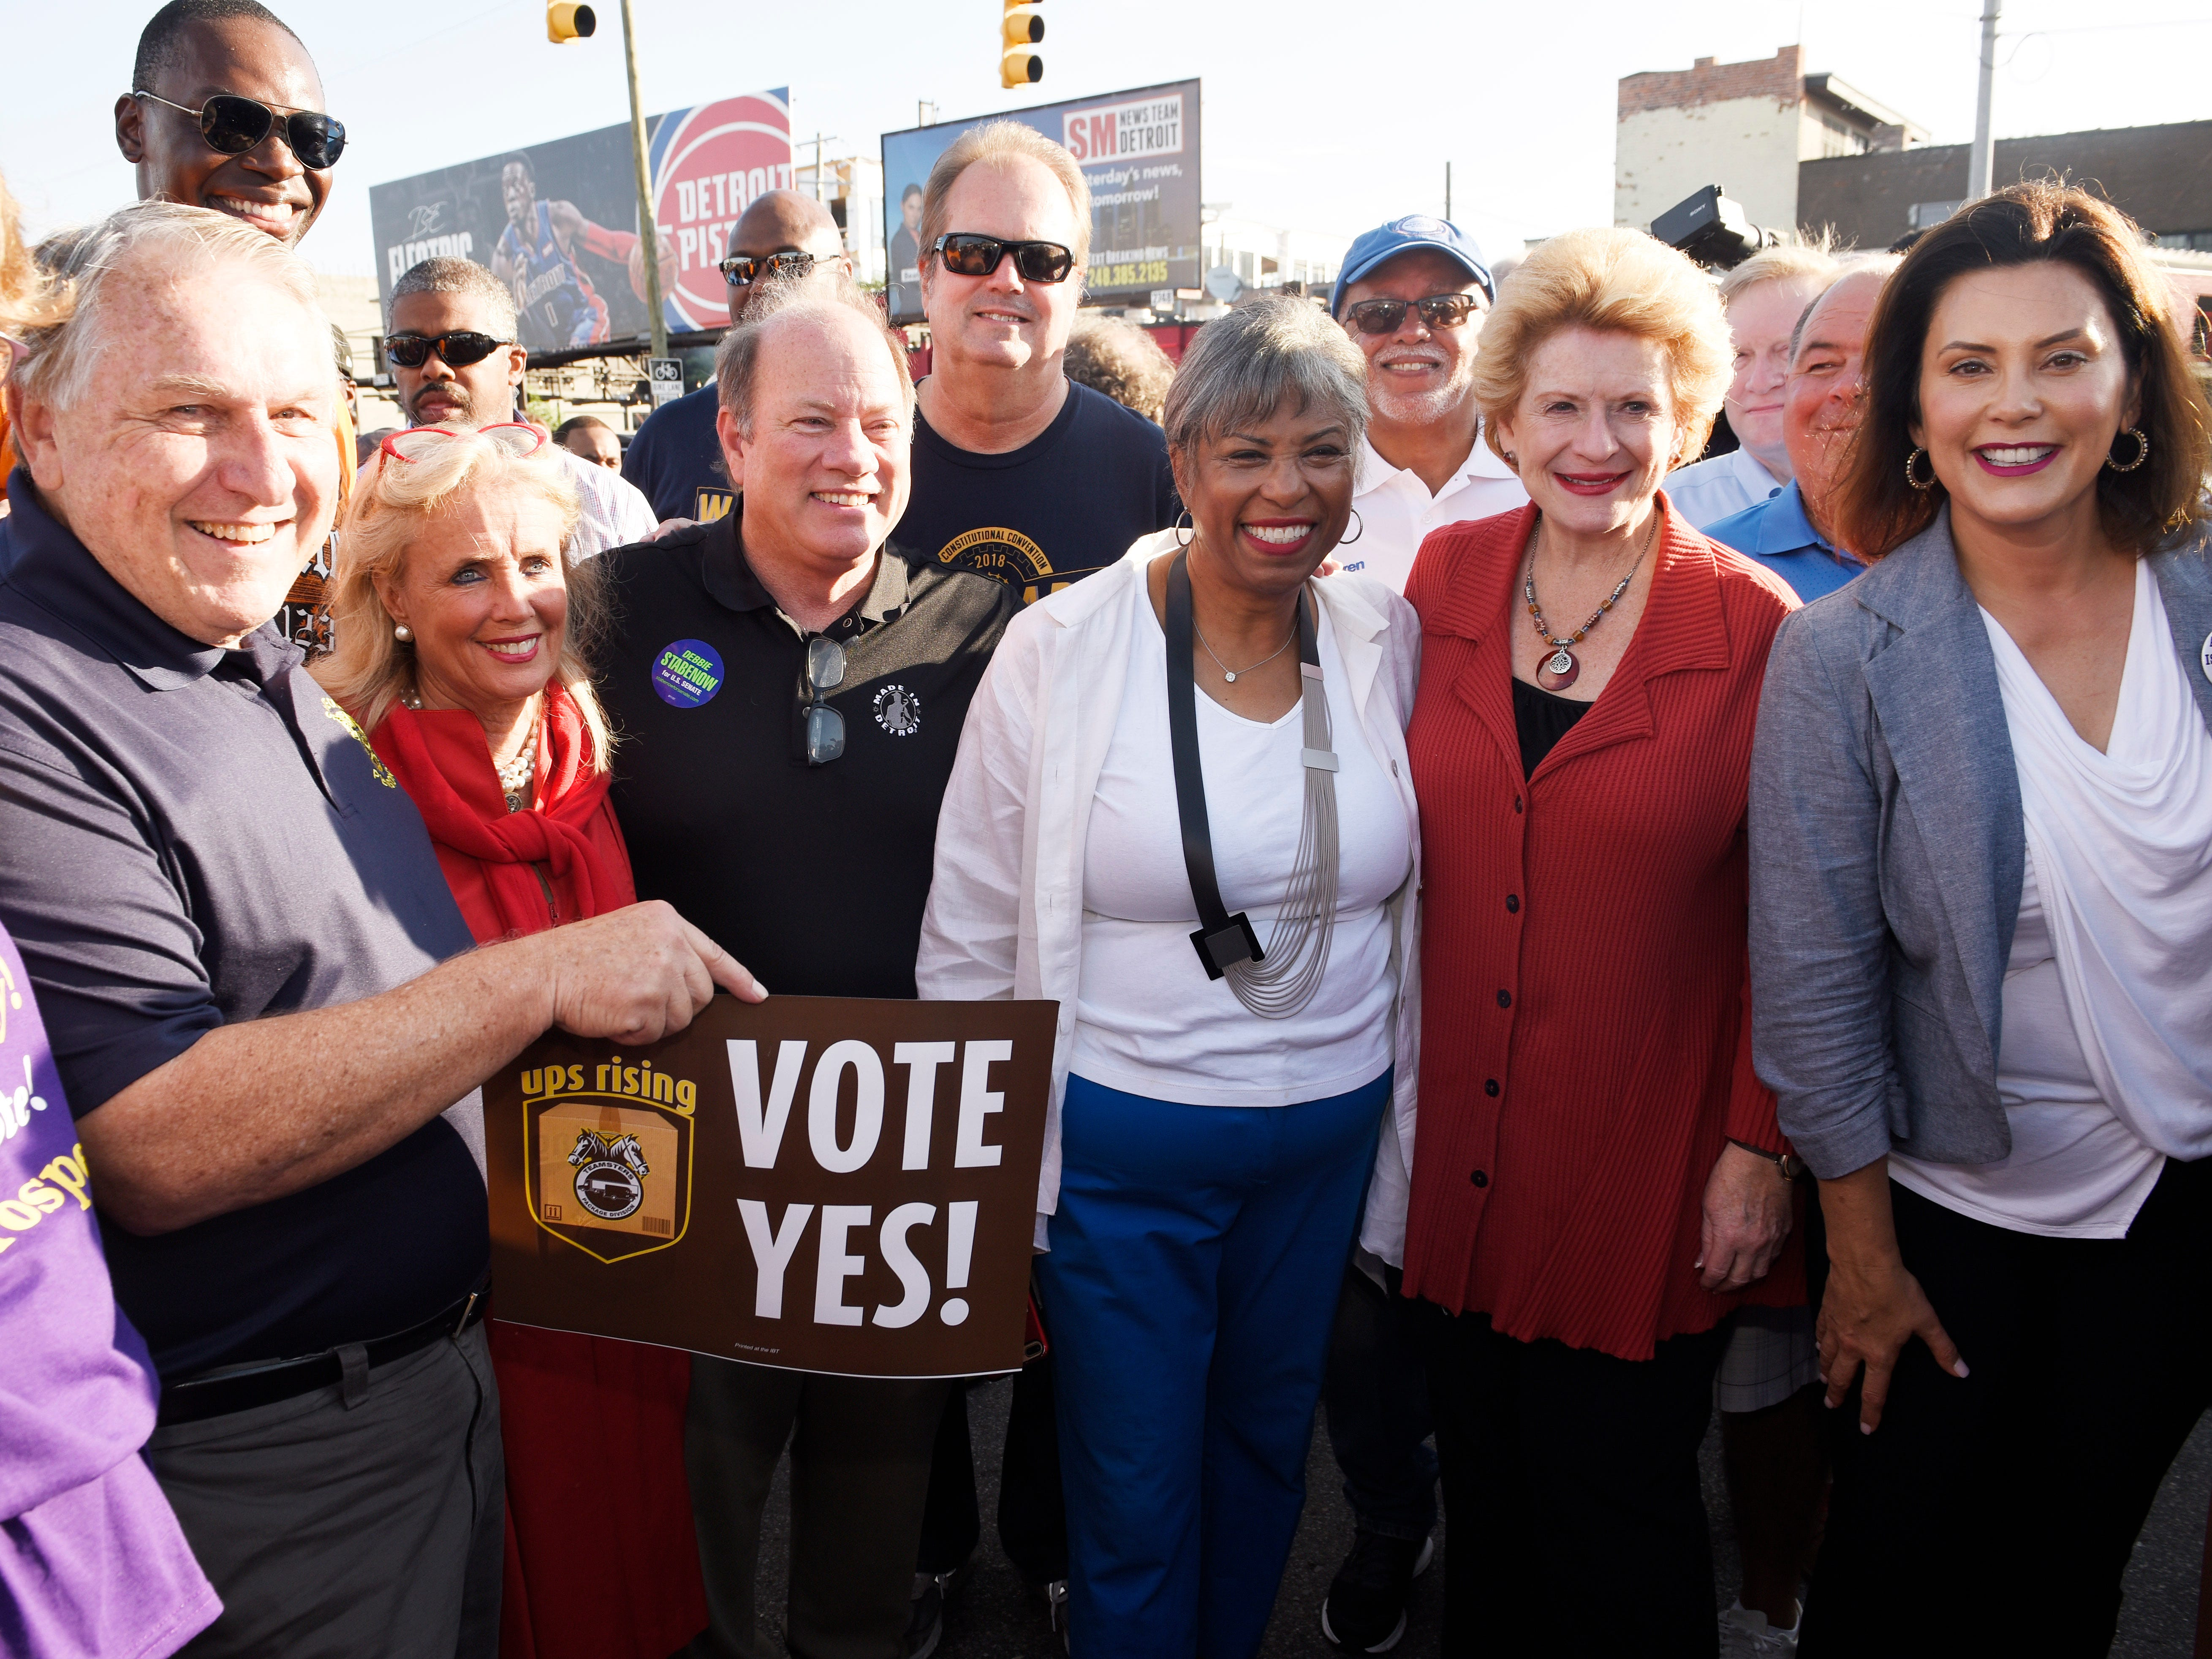 From left, James P. Hoffa, Debbie Dingell, Mayor Mike Duggan, Brenda Lawrence, Debbie Stabenow and Governor nominee Gretchen Whitmer pose for a photo before the kickoff of Detroit's Labor Day Parade.